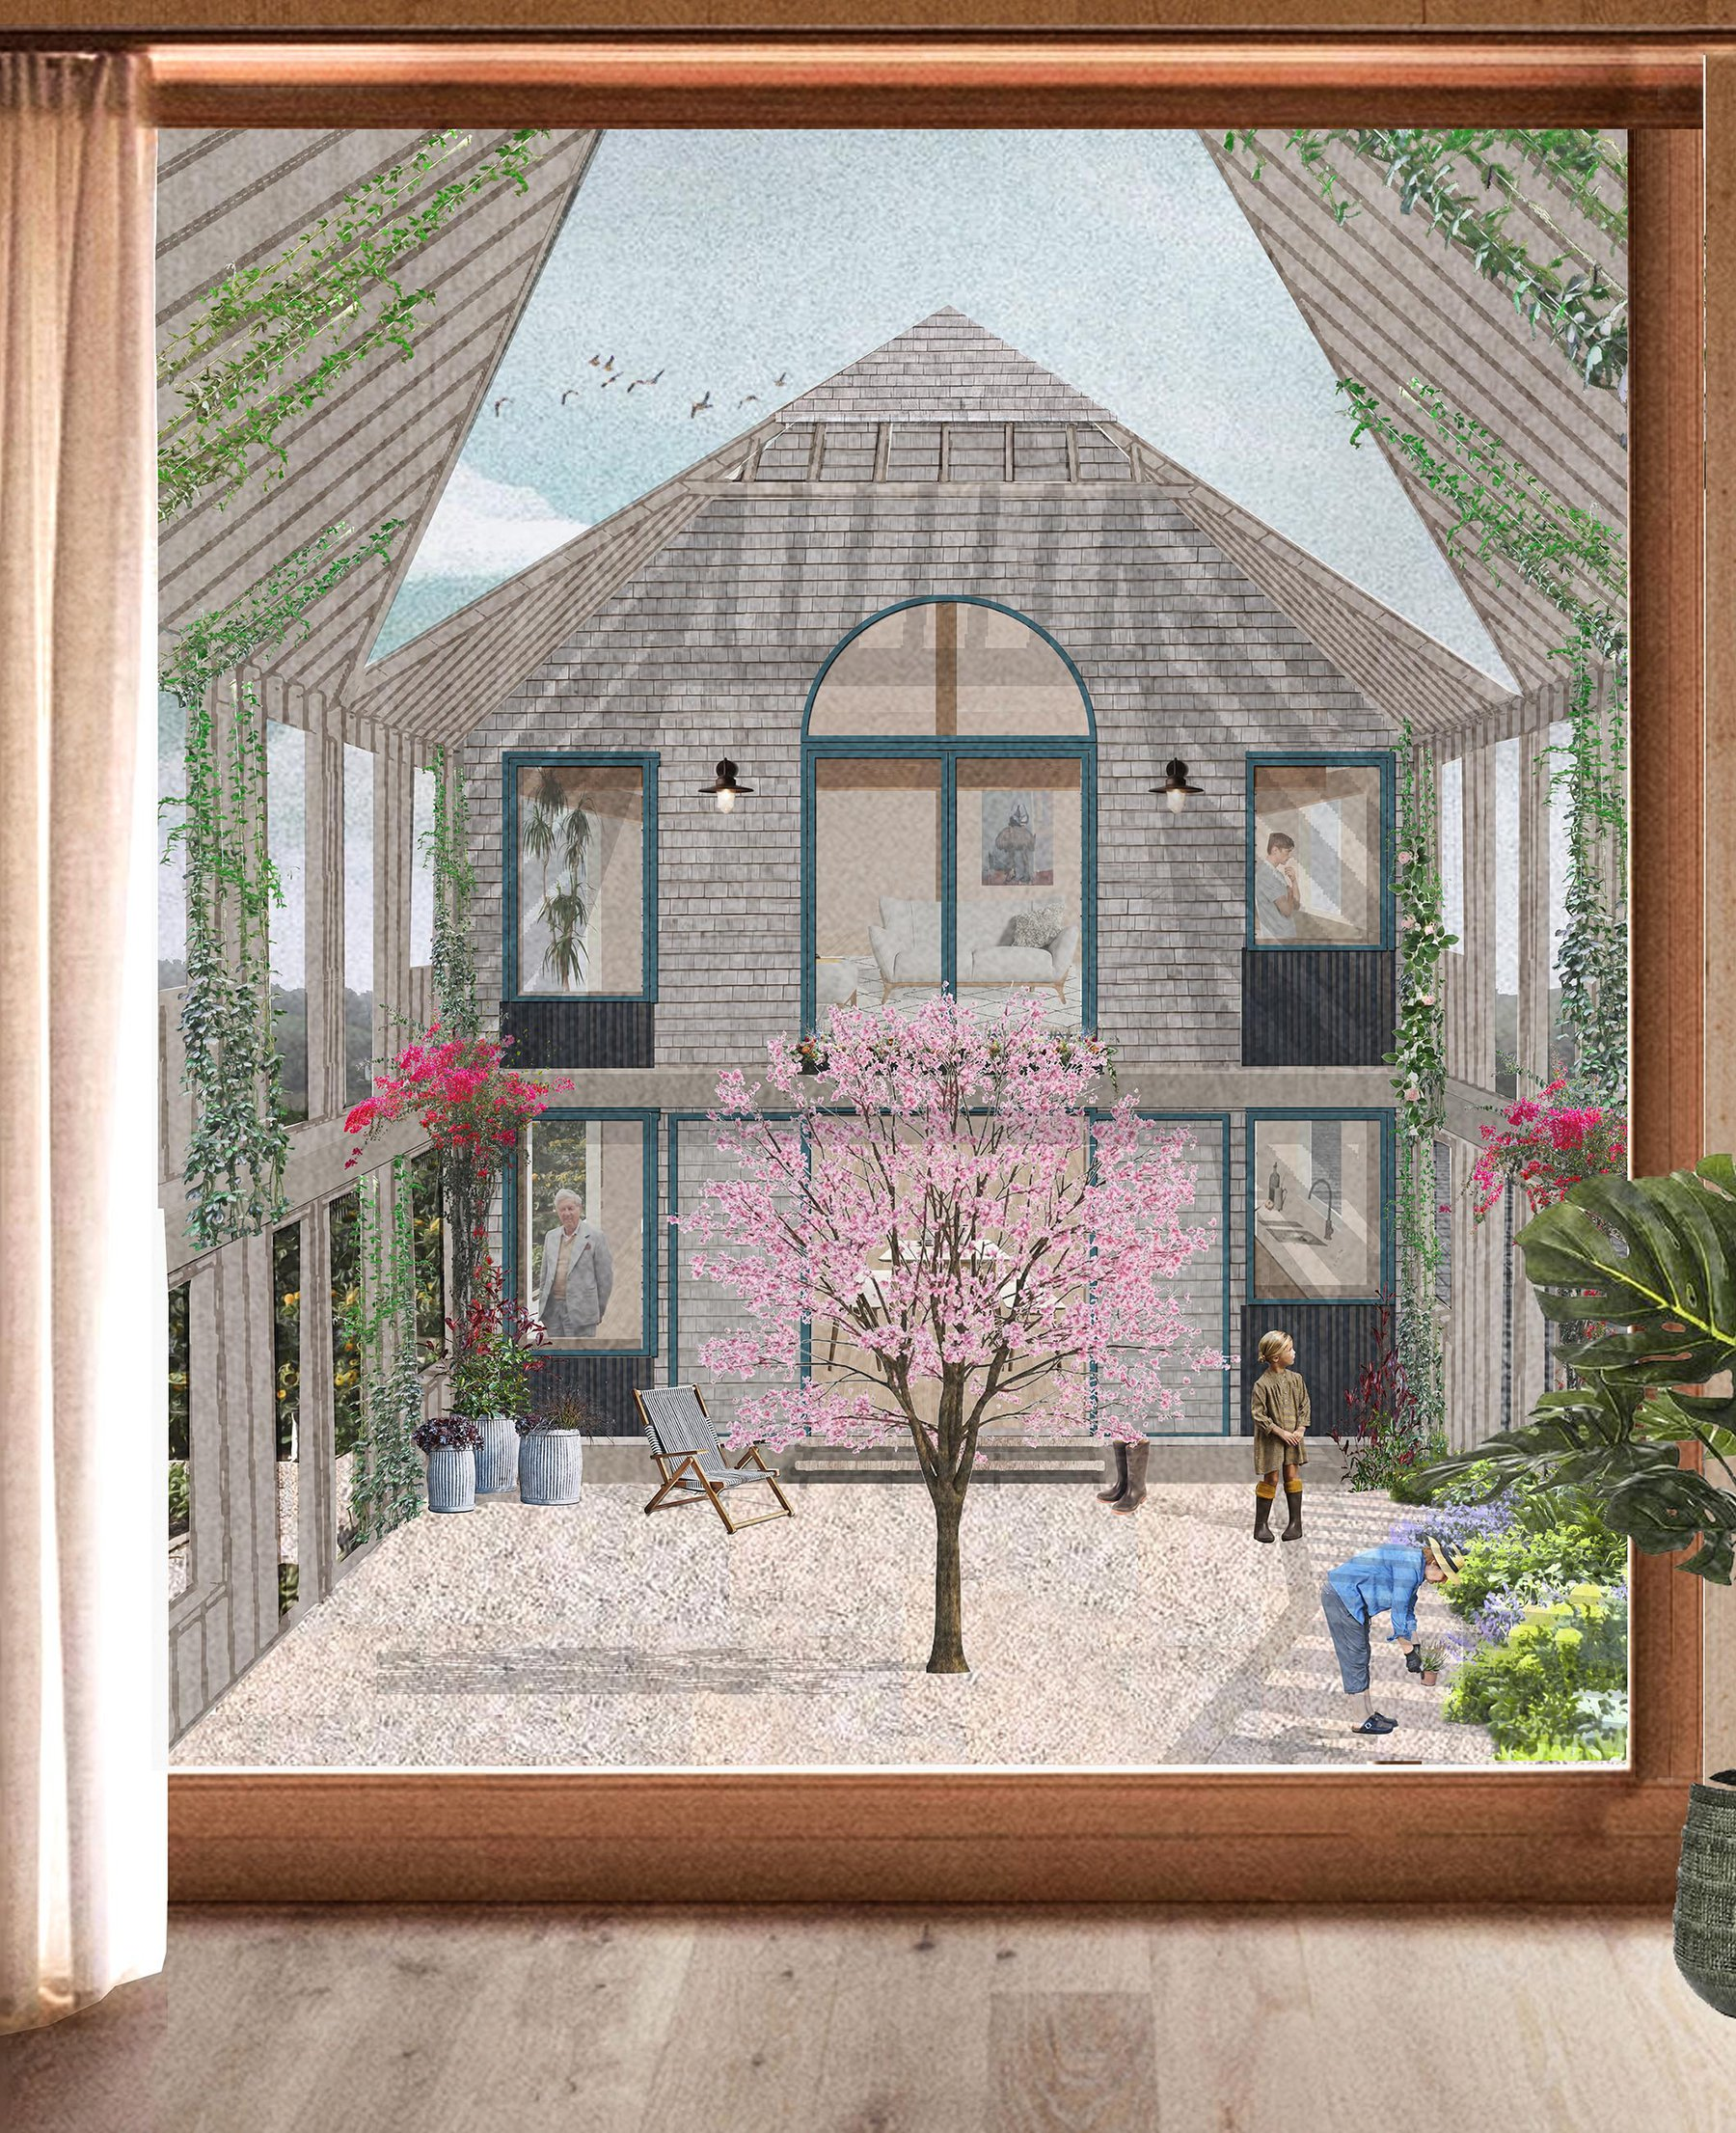 Mariam Shirley, Courtyard Collage, The typology takes influence from the historic barns typically found in rural England and notable on the site of Vearse Farm in Bridport. The timber structure forms a deep buil.jpg